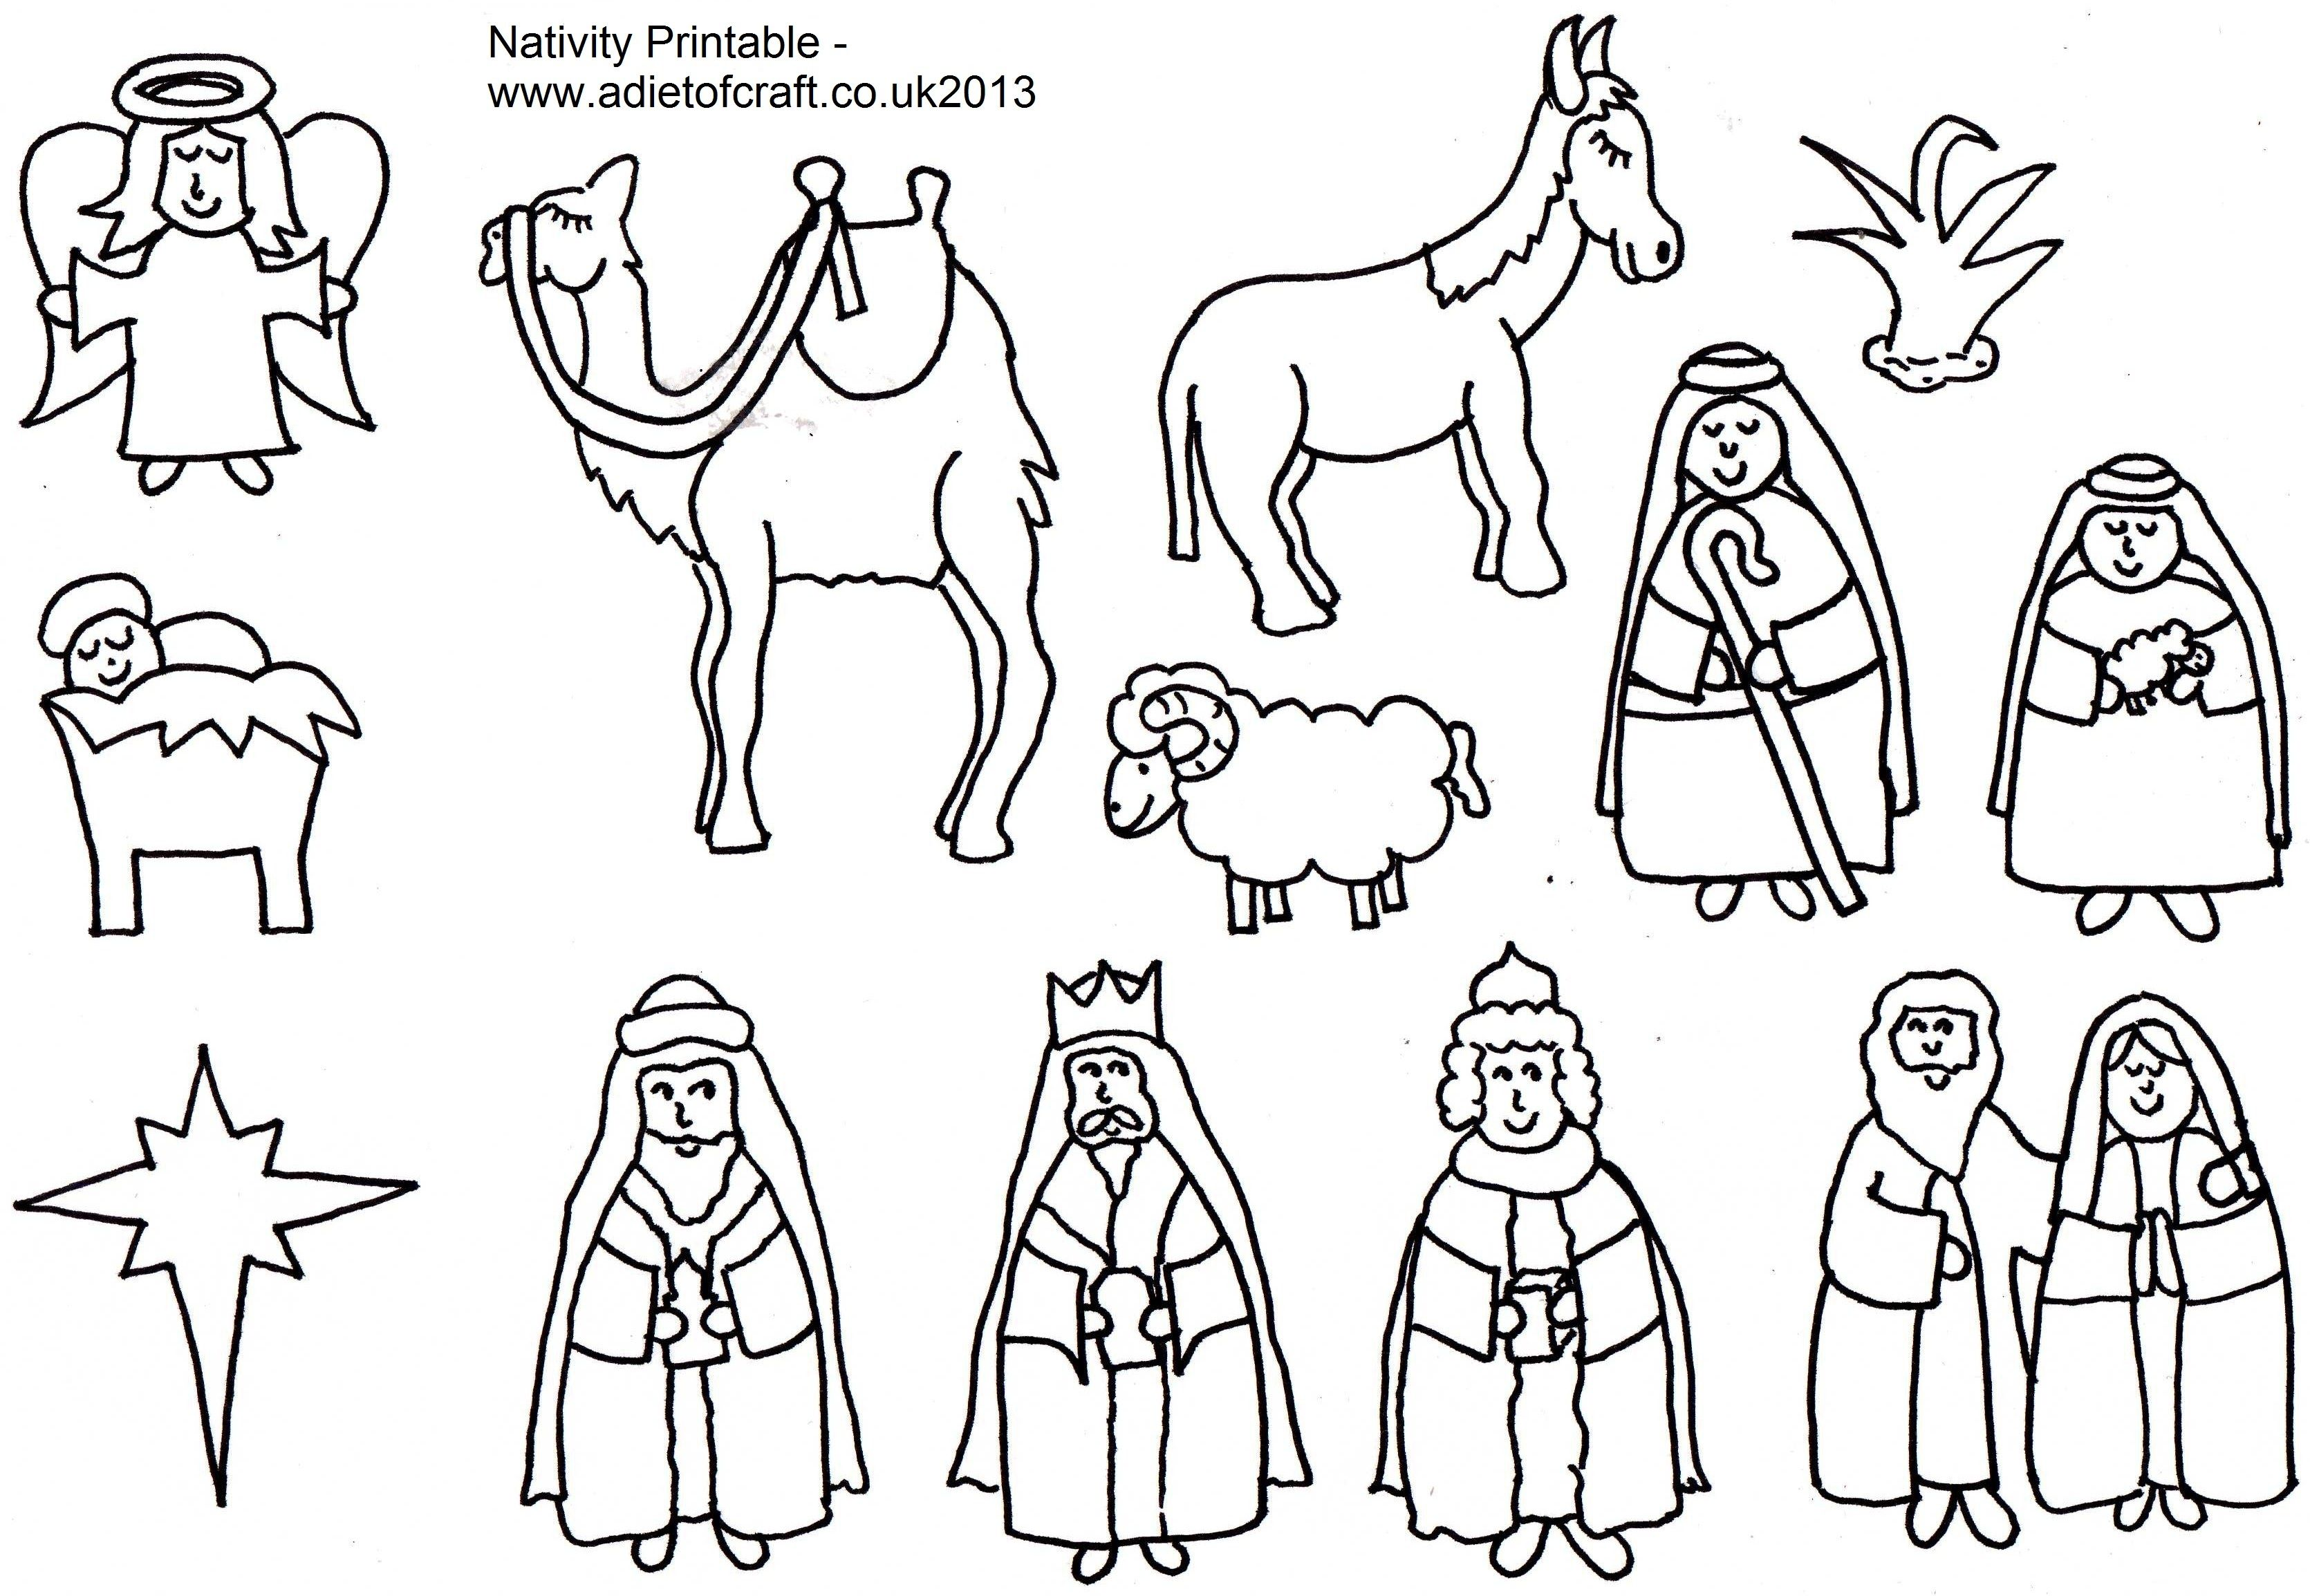 Nativity Scene Coloring Pages Printables  Nativity coloring